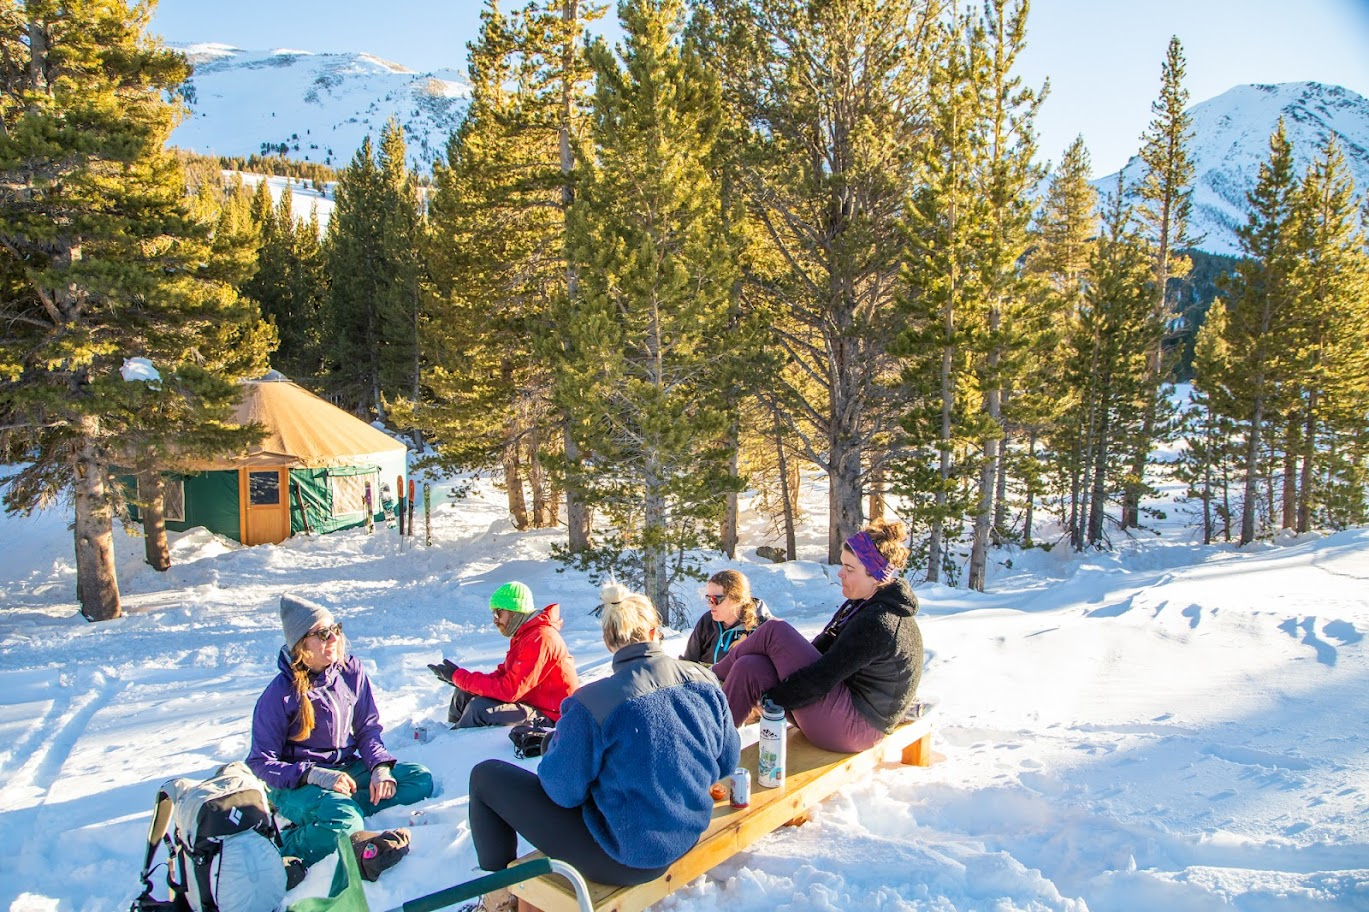 Hanging out at the Backcountry Yurt in the Eastern Sierra